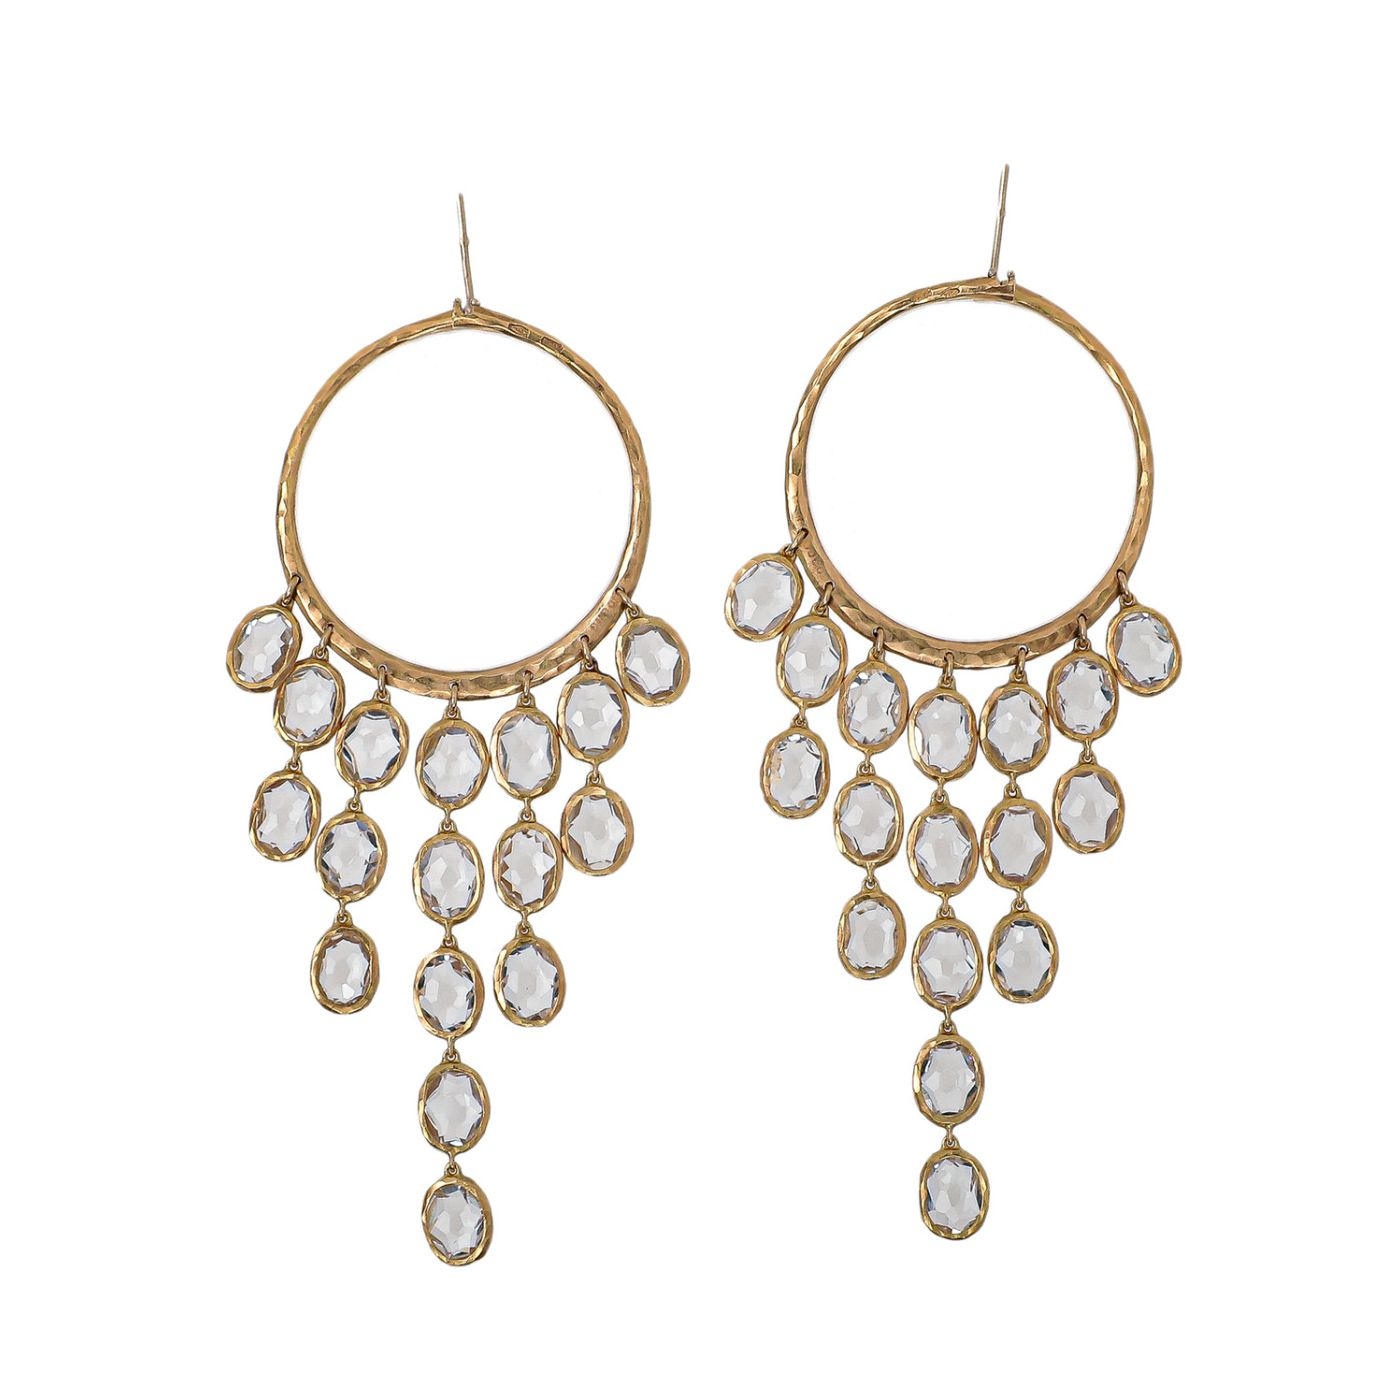 Gucci 18K Yellow Gold Crystal Hammered Dangle Hoop Earrings